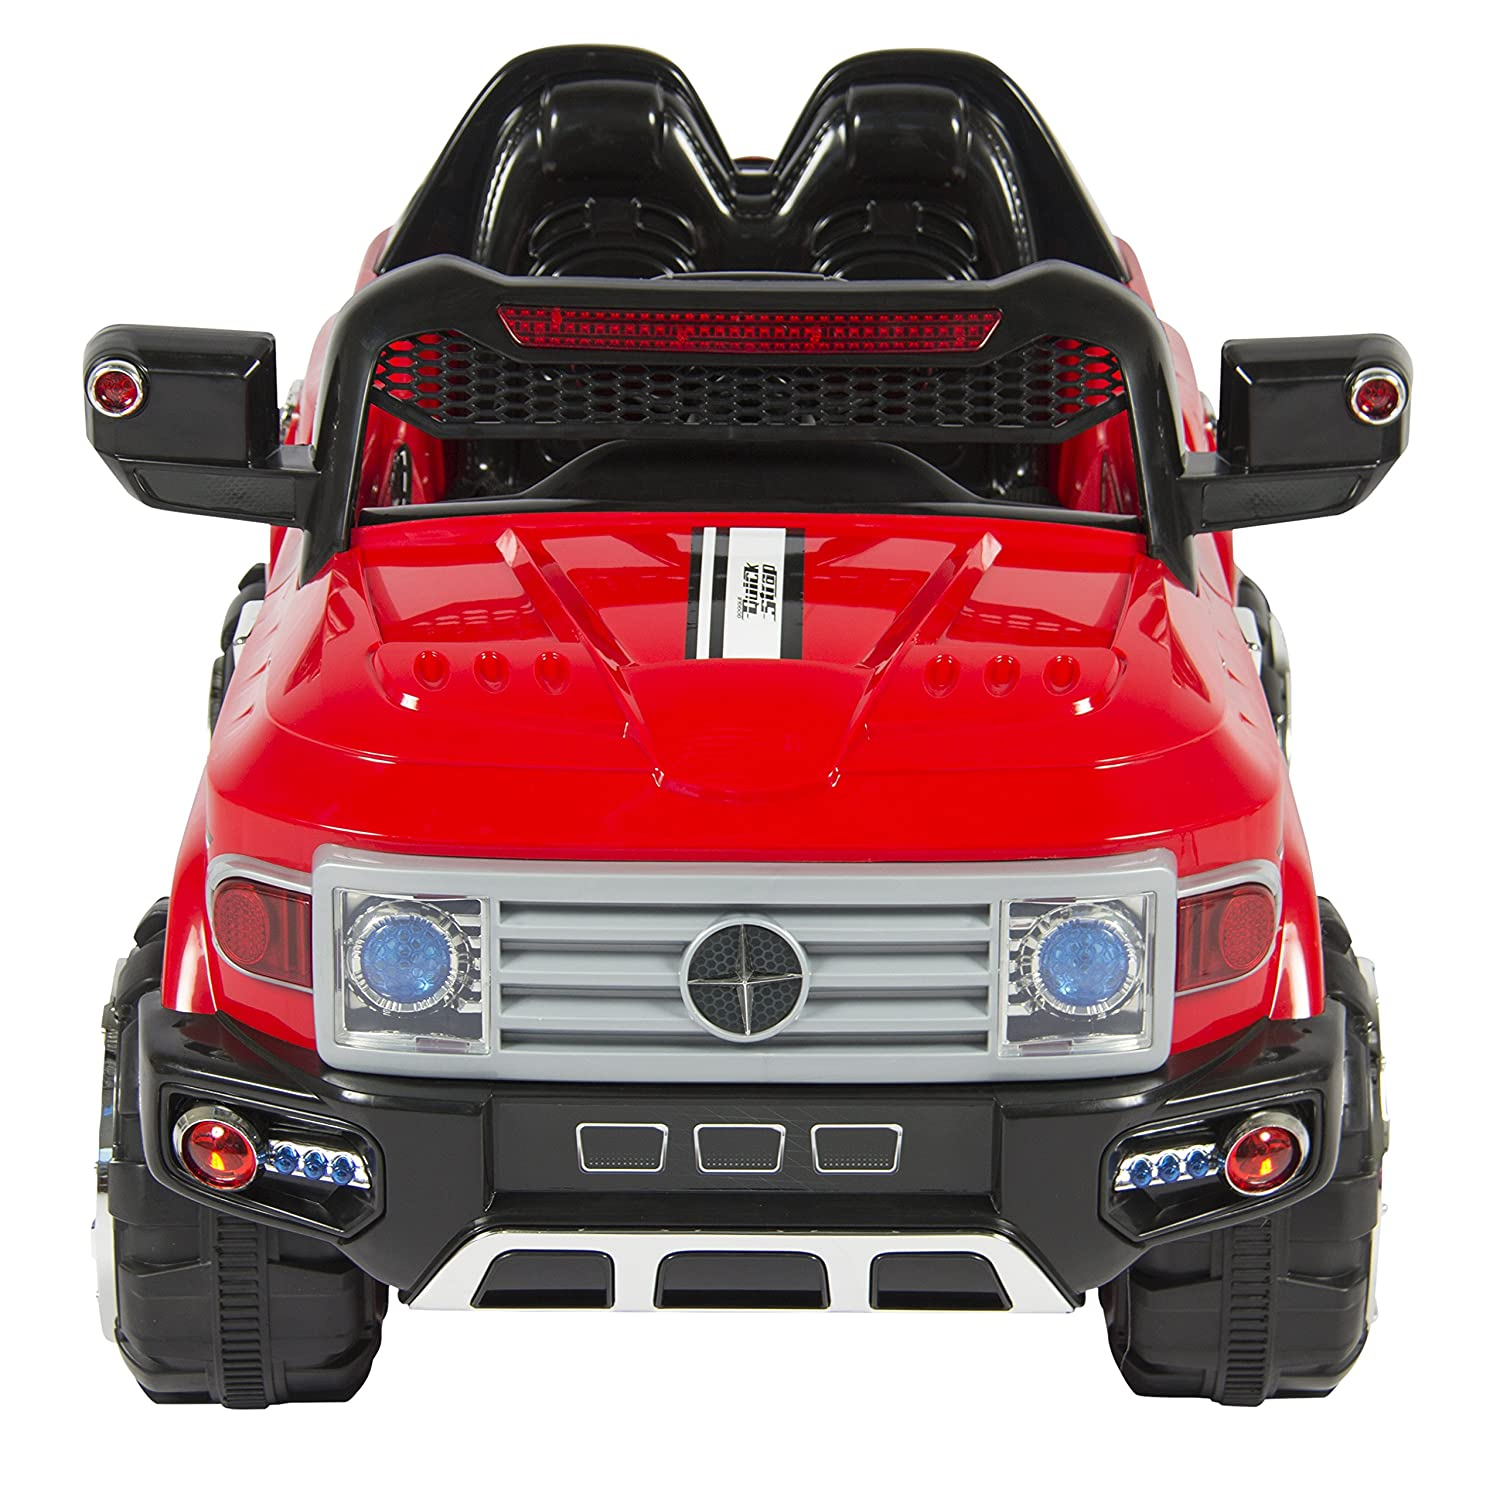 amazoncom best choice products 12v kids ride on truck car w remote control 2 speeds led lights mp3 aux cord red toys games